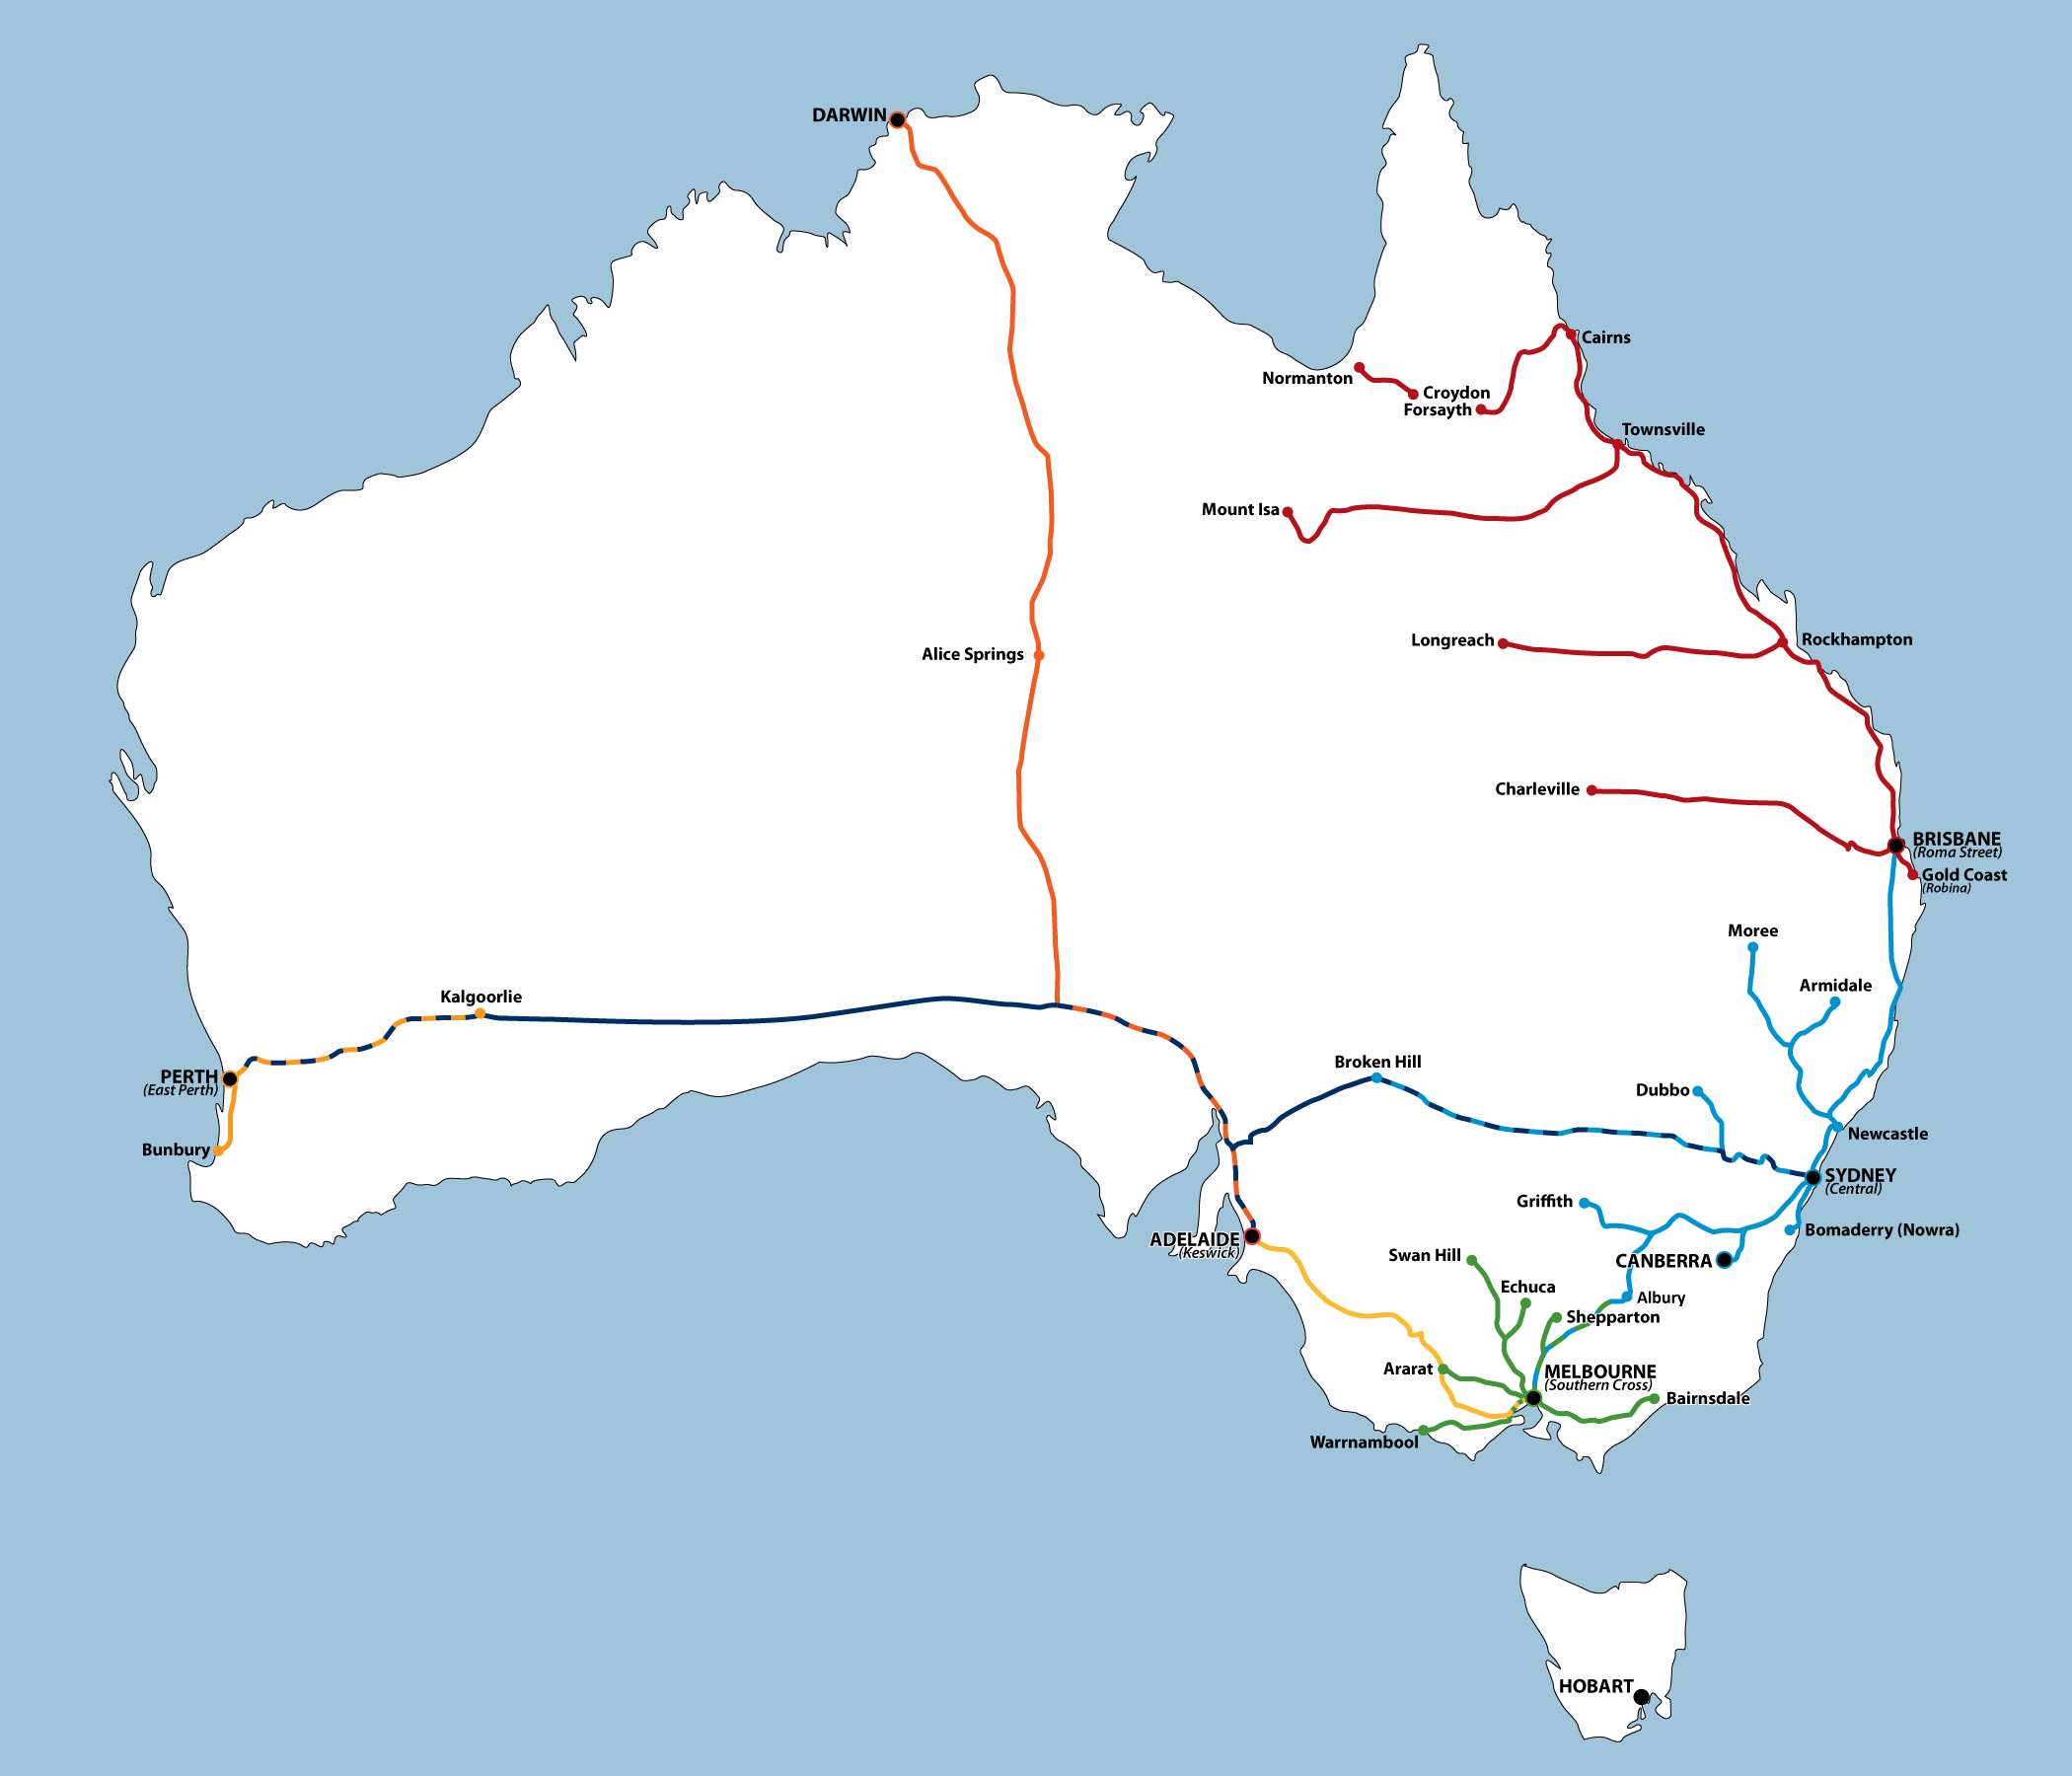 perth rail map australia sydney - photo#16